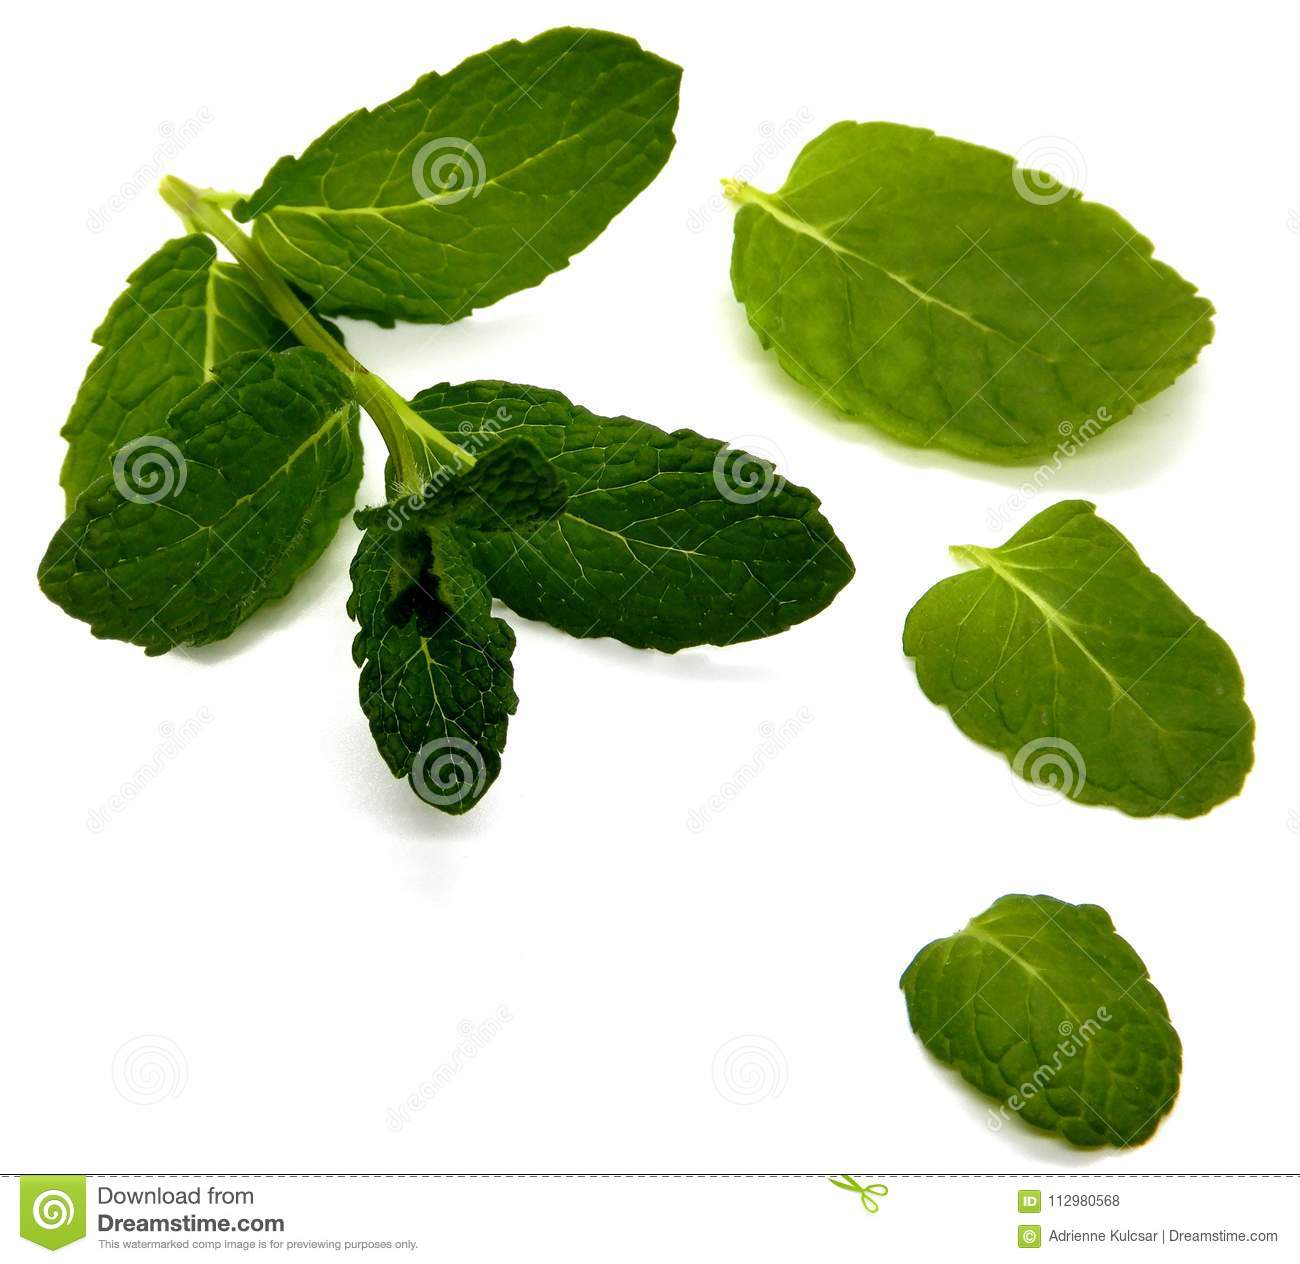 Mint against a white background